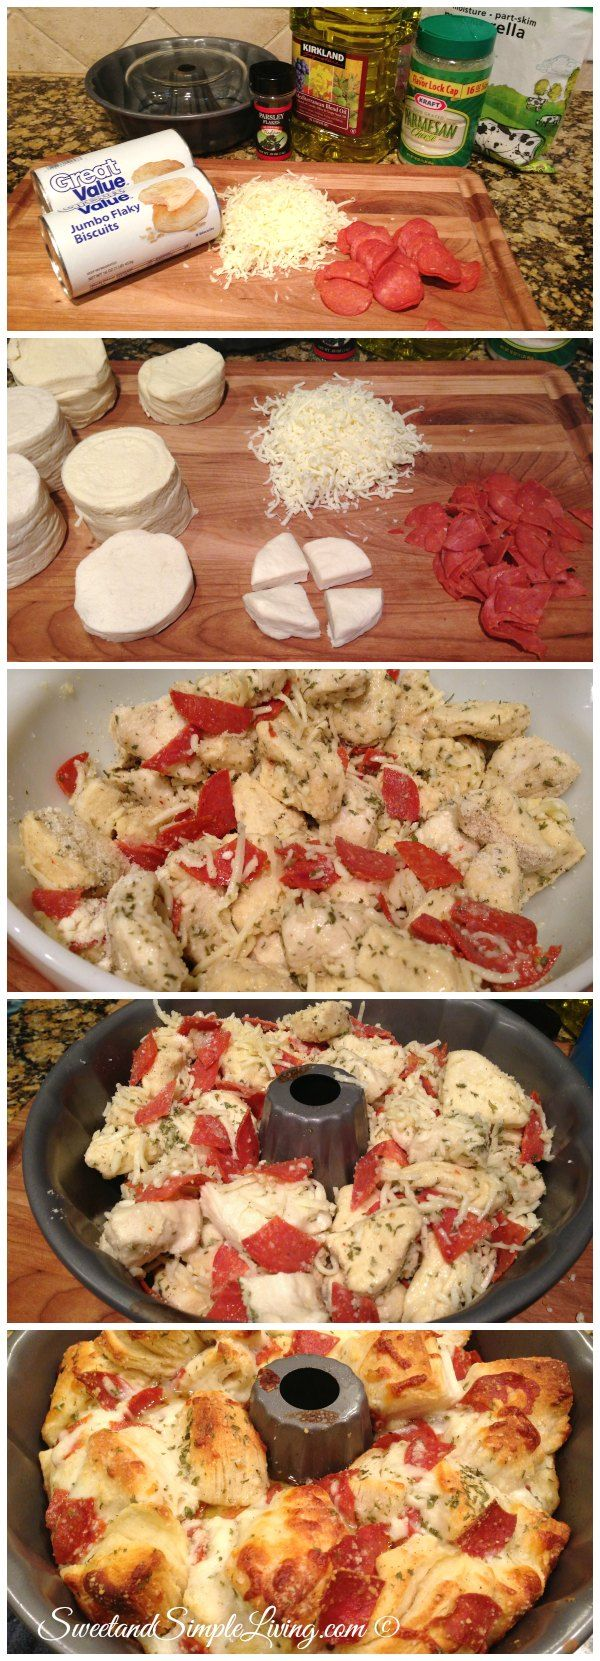 EASY Pull Apart Pizza Bread!!! I make this all the time! I love a good, quick recipe on busy days